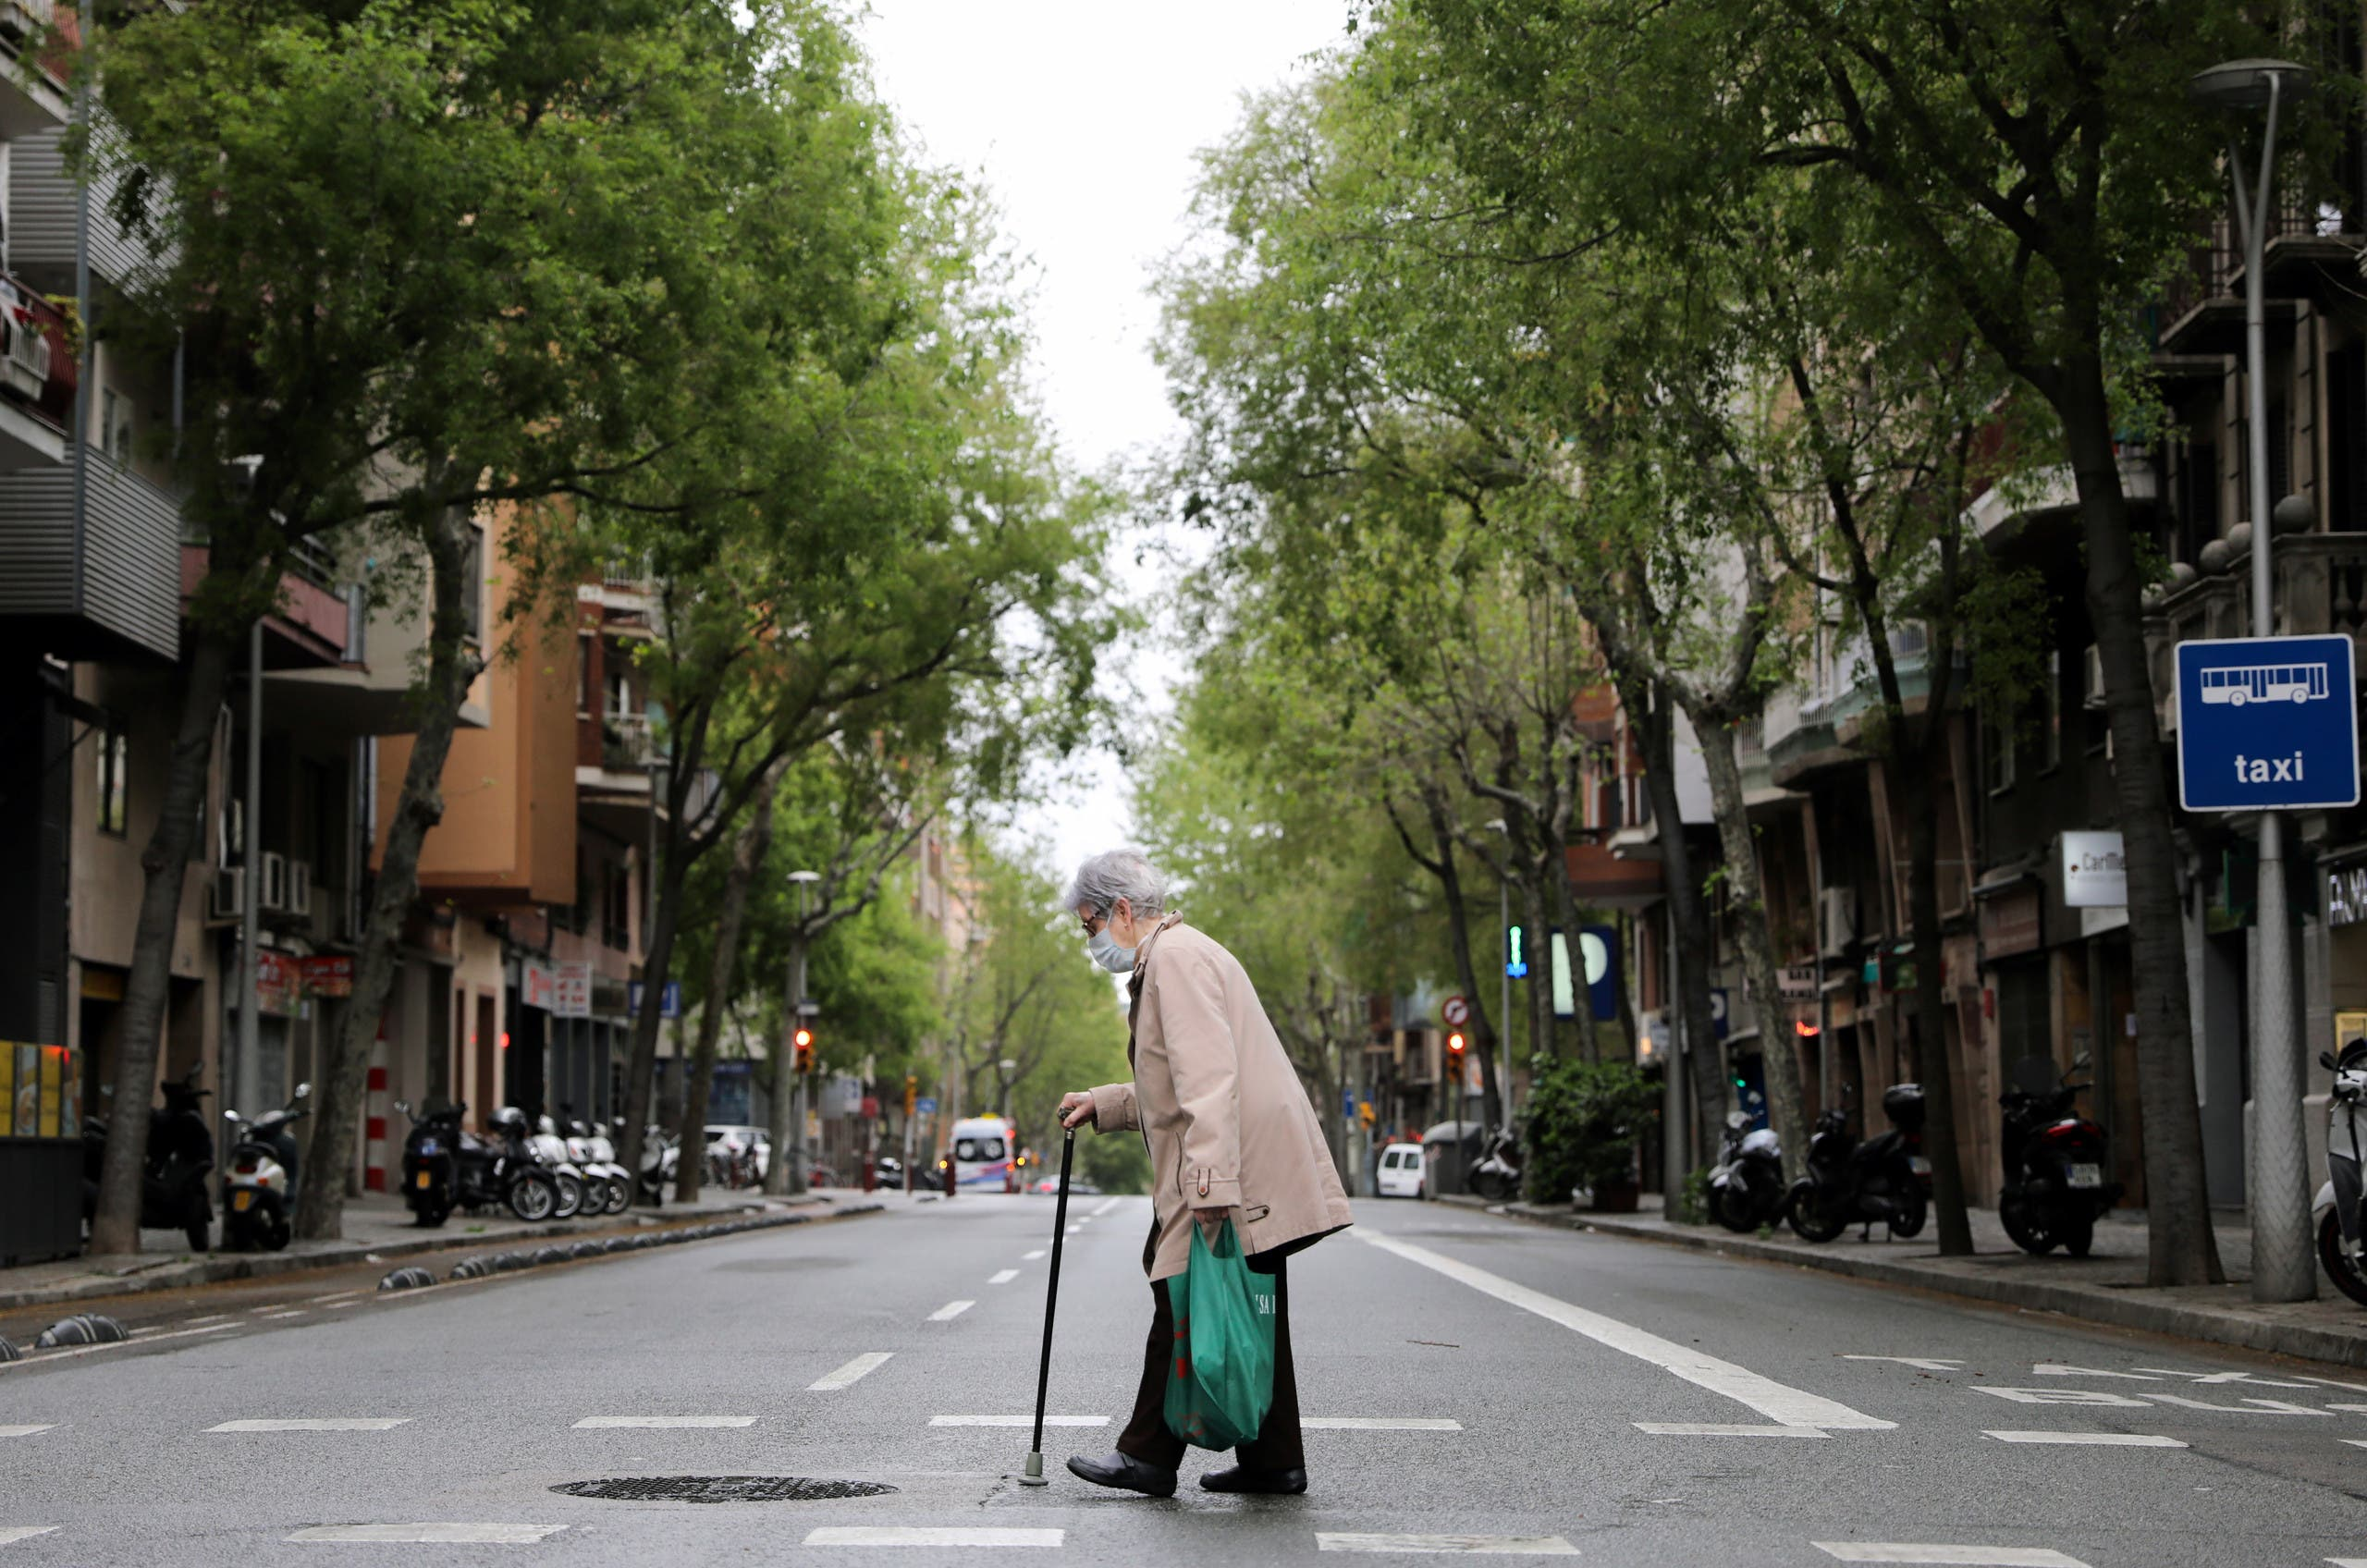 An elderly woman wears a protective face mask as she walks with shopping bags during the coronavirus disease (COVID-19) outbreak, in Barcelona, Spain April 1, 2020. (Reuters)